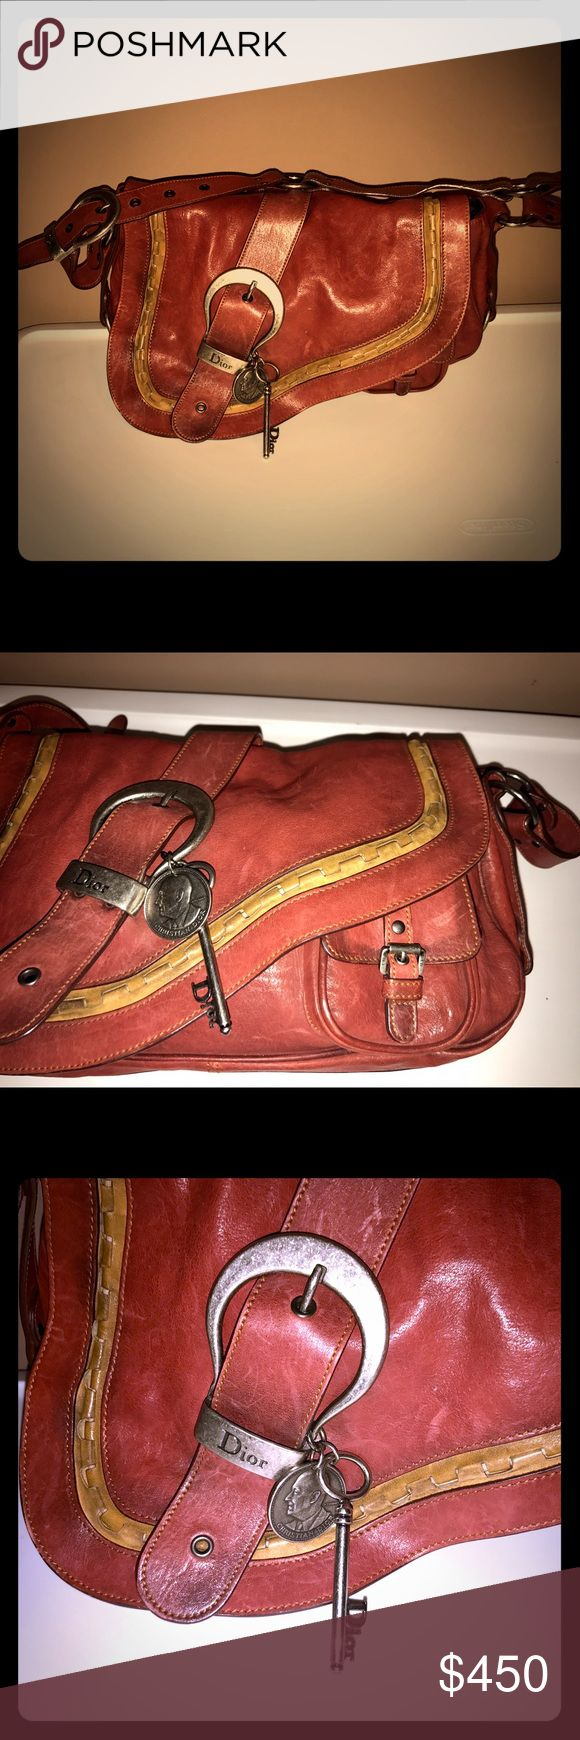 "DIOR Gaucho Belt Buckle Key Charm Saddle Bag Excellent preowned condition. Rustic. Smooth light brown distressed leather Gaucho shoulder bag by DIOR. Tan stitching and saddle flap with tan leather piping, belt detail with silver tone tarnished buckle embellished with ""Dior"" key and coin charms, mini front pocket, and belt buckle shoulder strap with loop hardware. Logo interior pristine clean. Made in Italy.  Length: 15 in. Width: 3.5 in. Height: 9 in. Strap Drop: 10 in. Dior Bags Shoulder…"